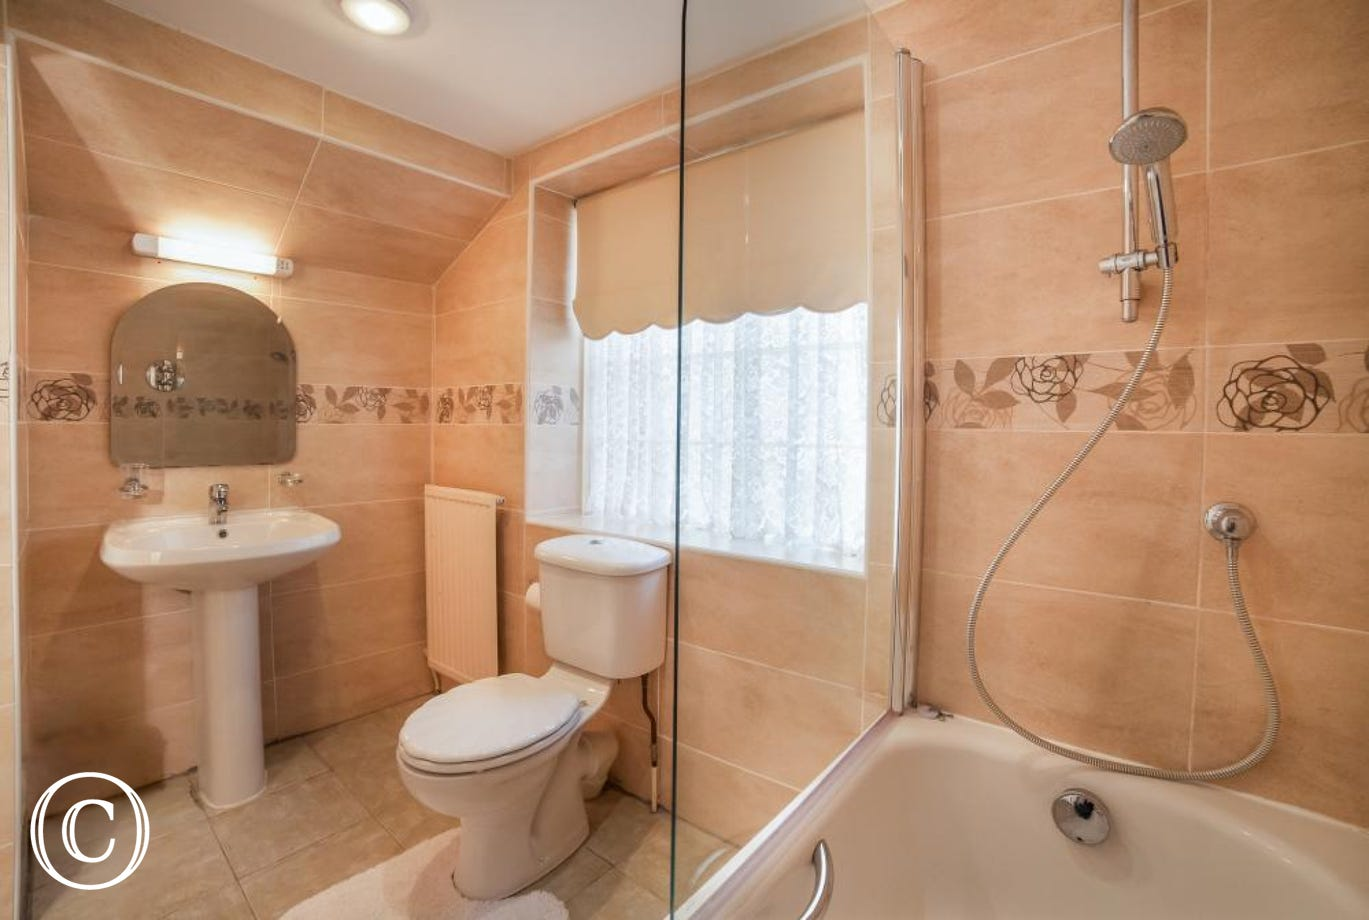 Meadfoot Beach Apartment, Torquay - Family bathroom